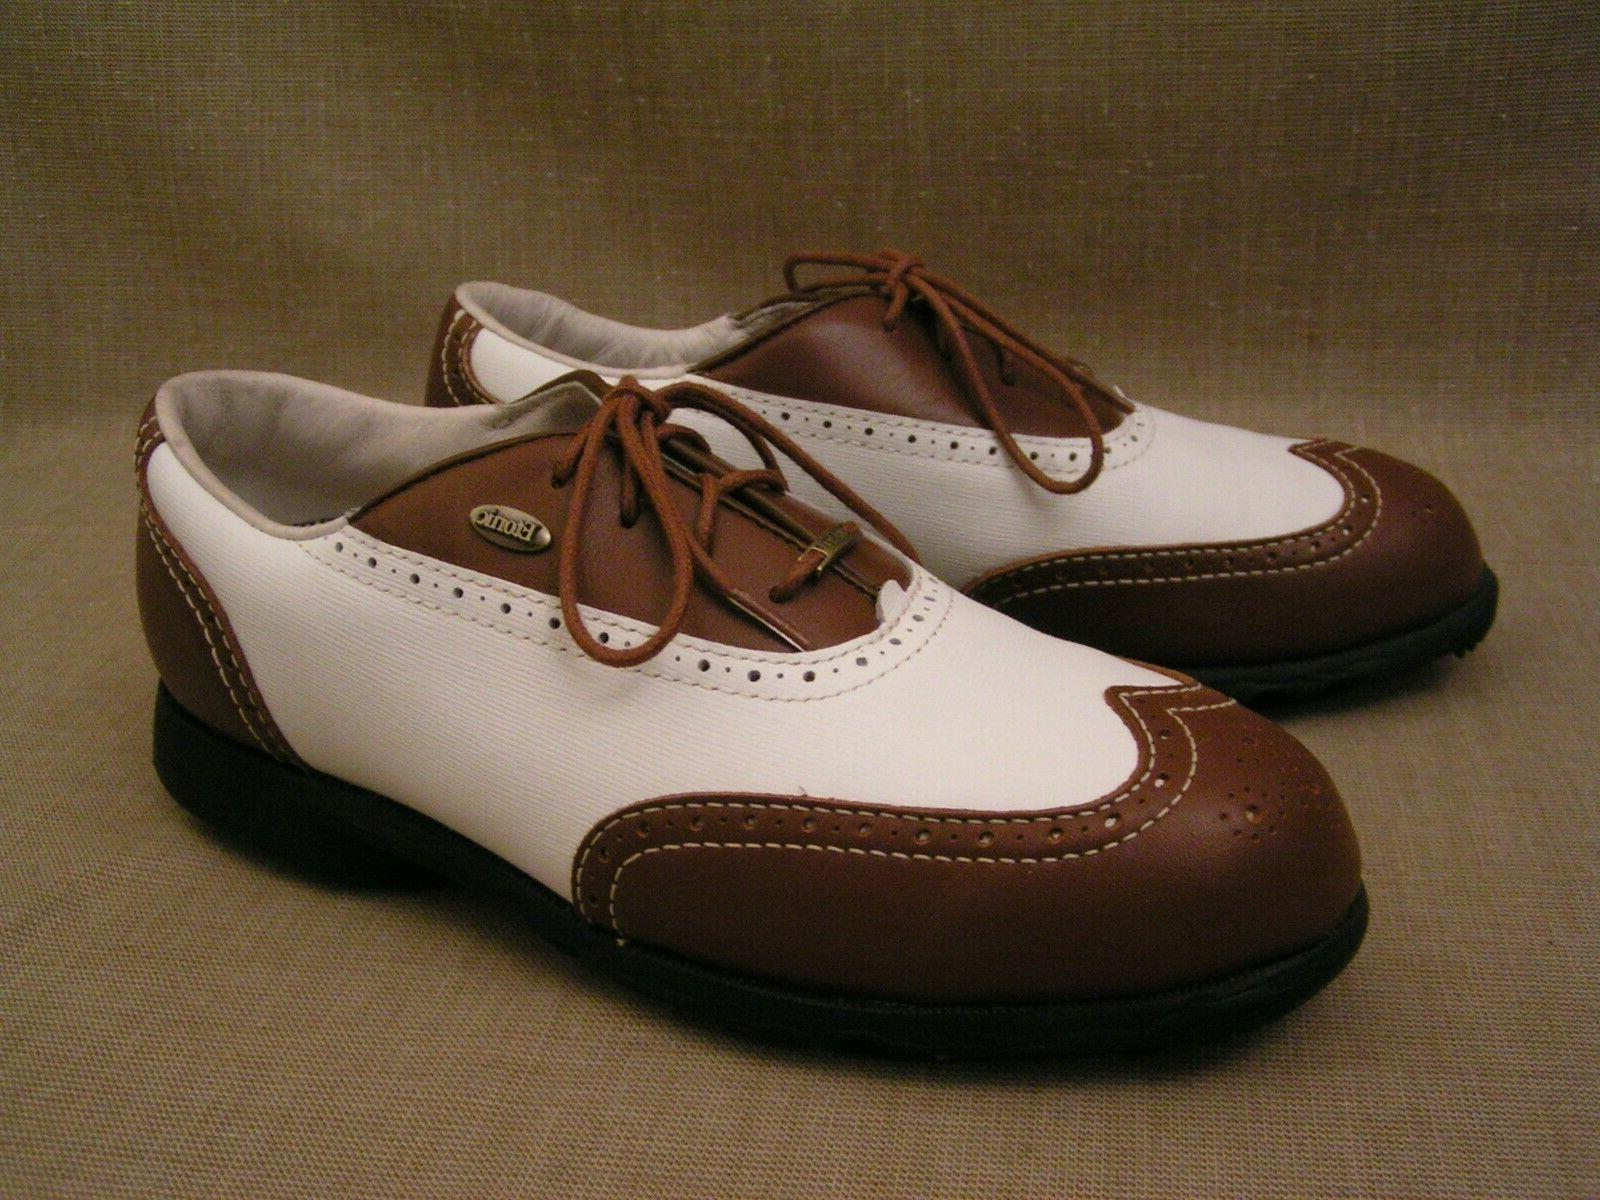 mens difference 2000 white and brown wingtip